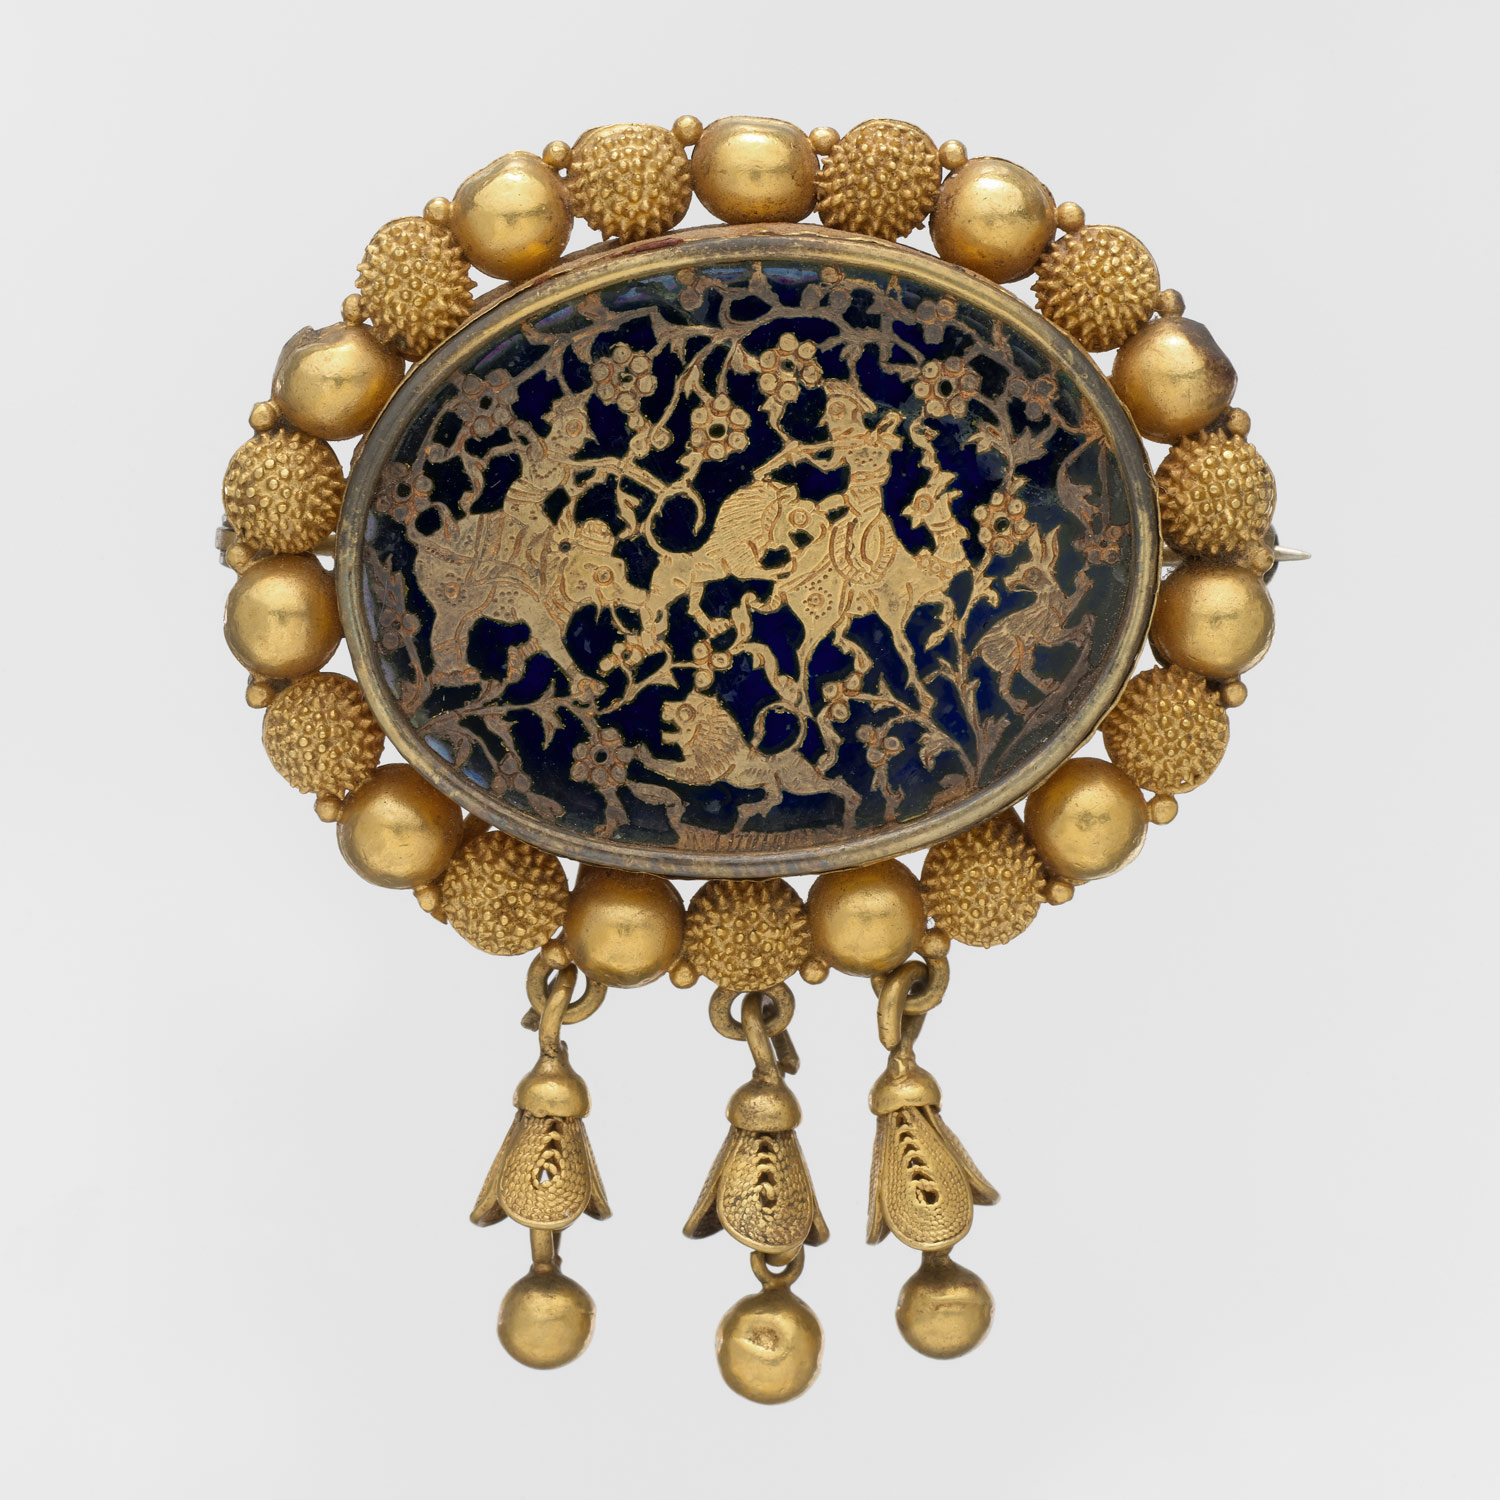 Brooch Decorated in the Thewa Technique